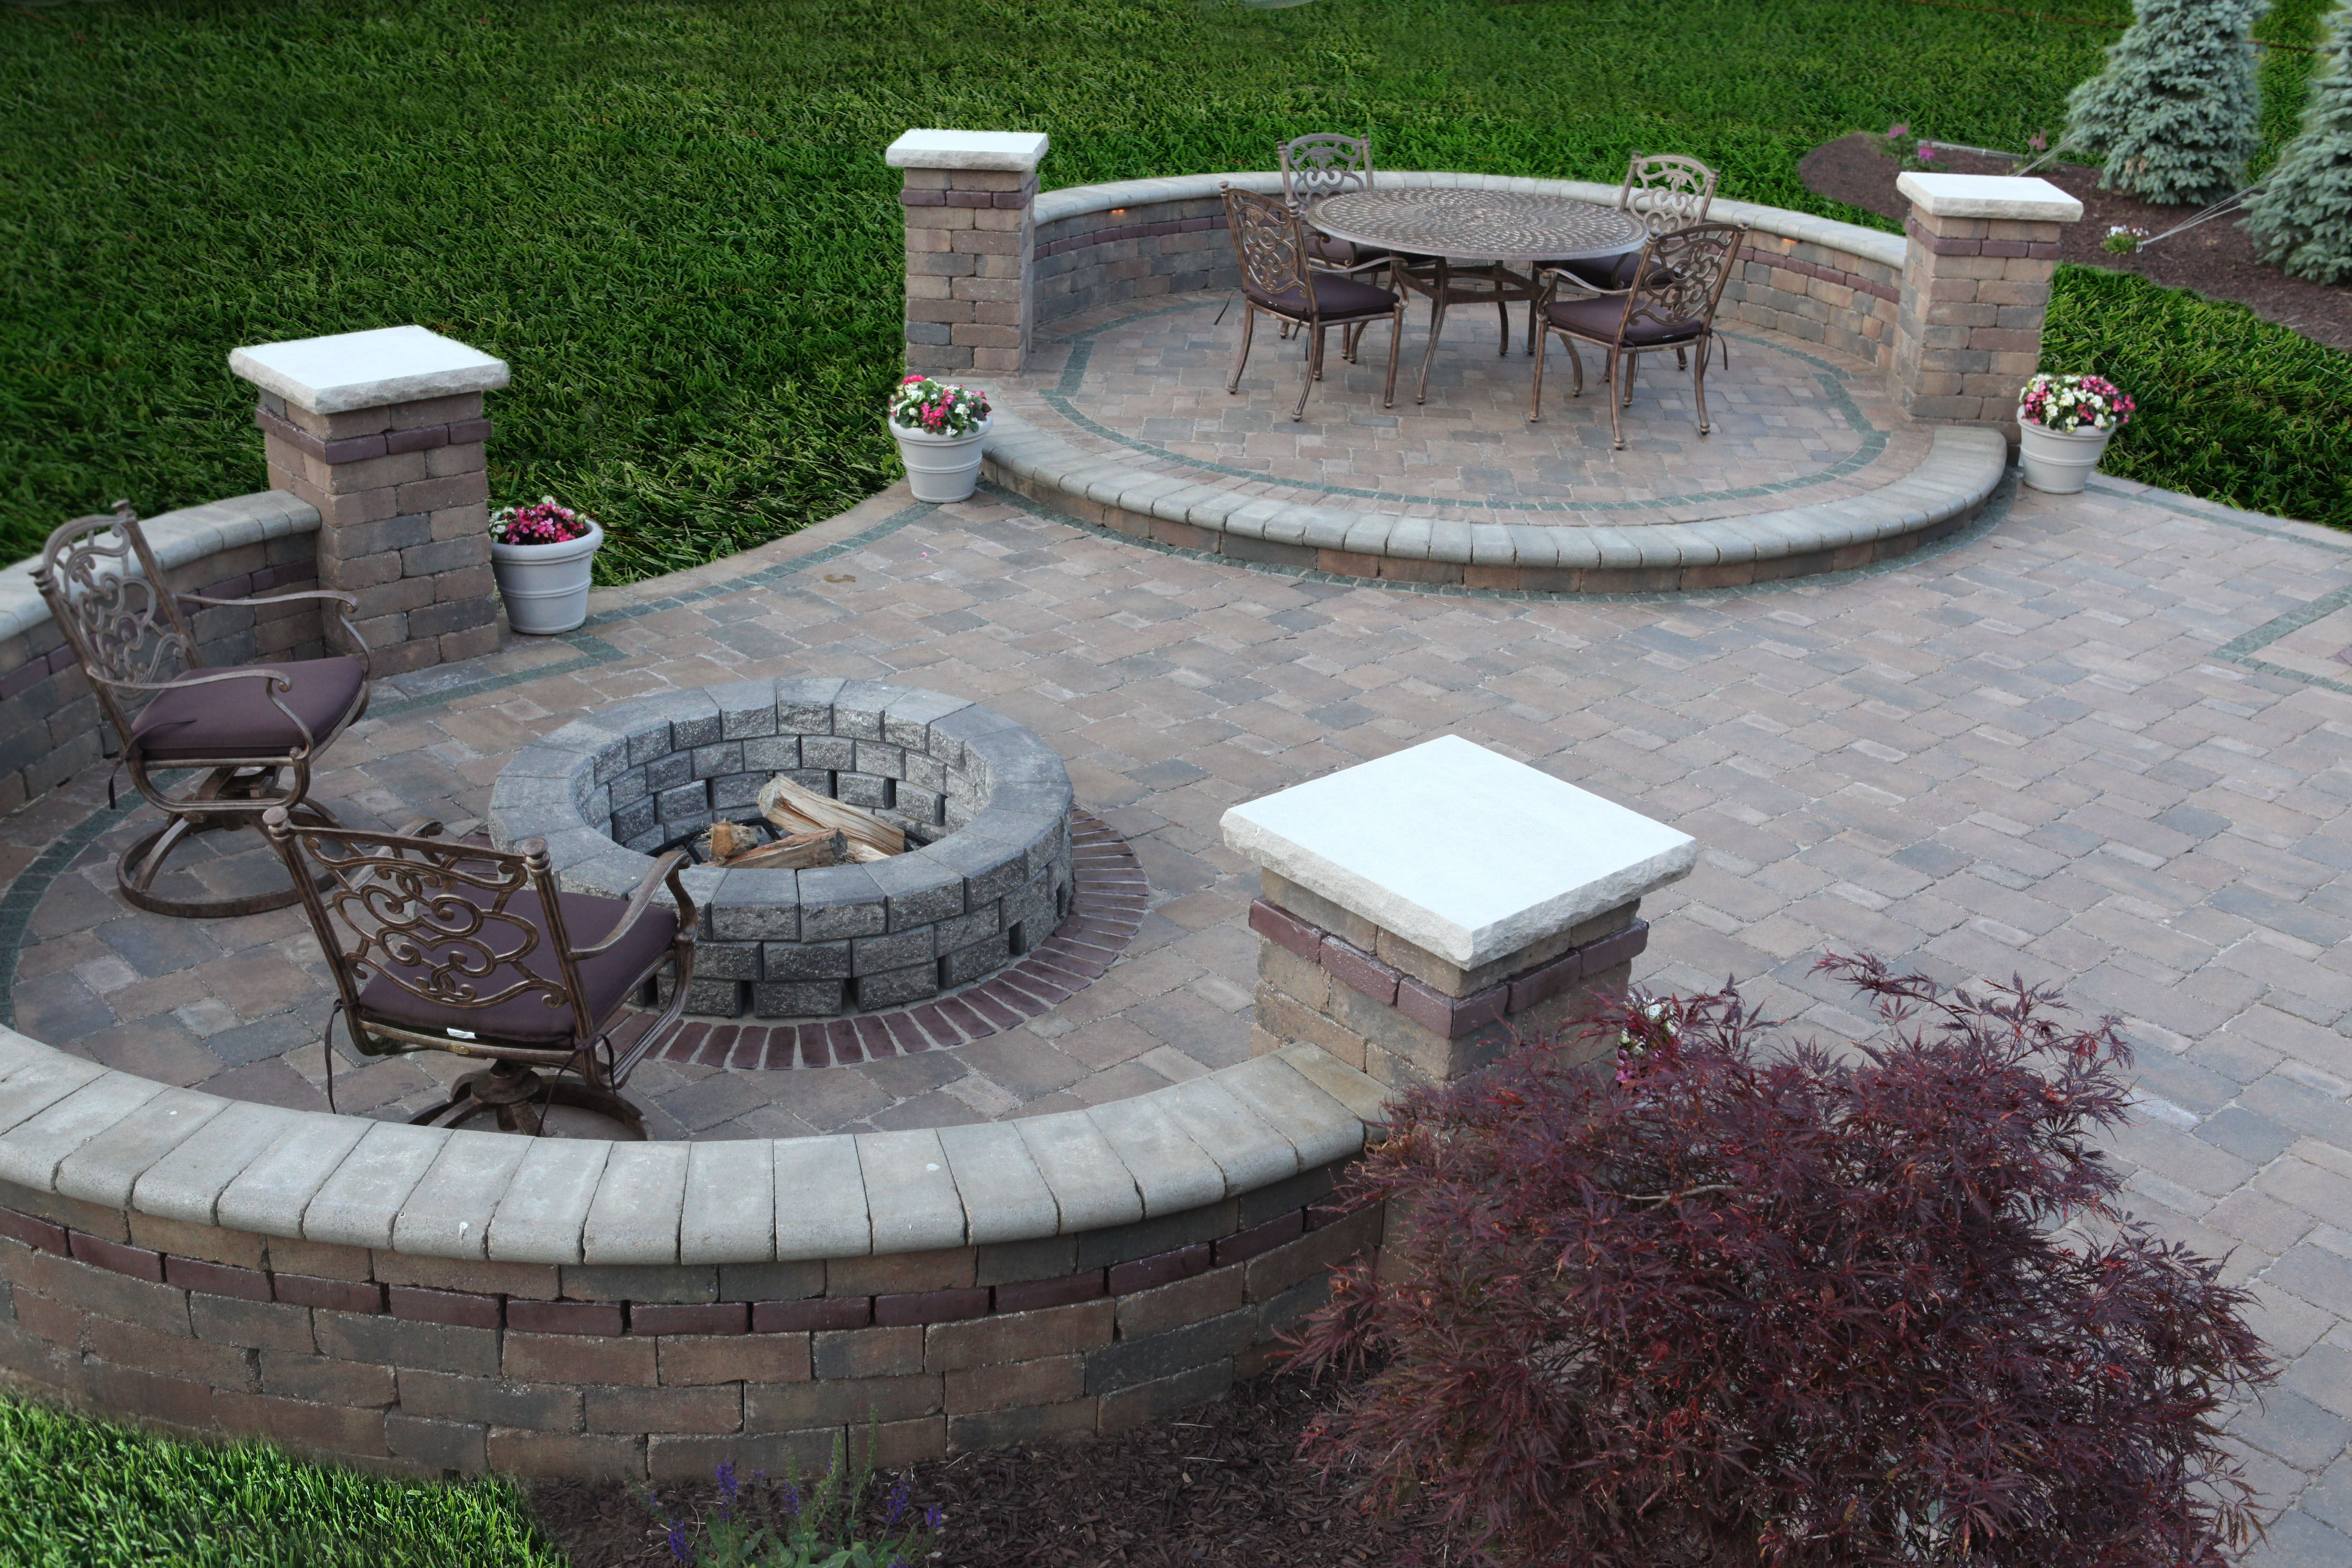 Best ideas about Backyard Fire Pit . Save or Pin Baron Landscaping Outdoor Fireplace Contractor Now.